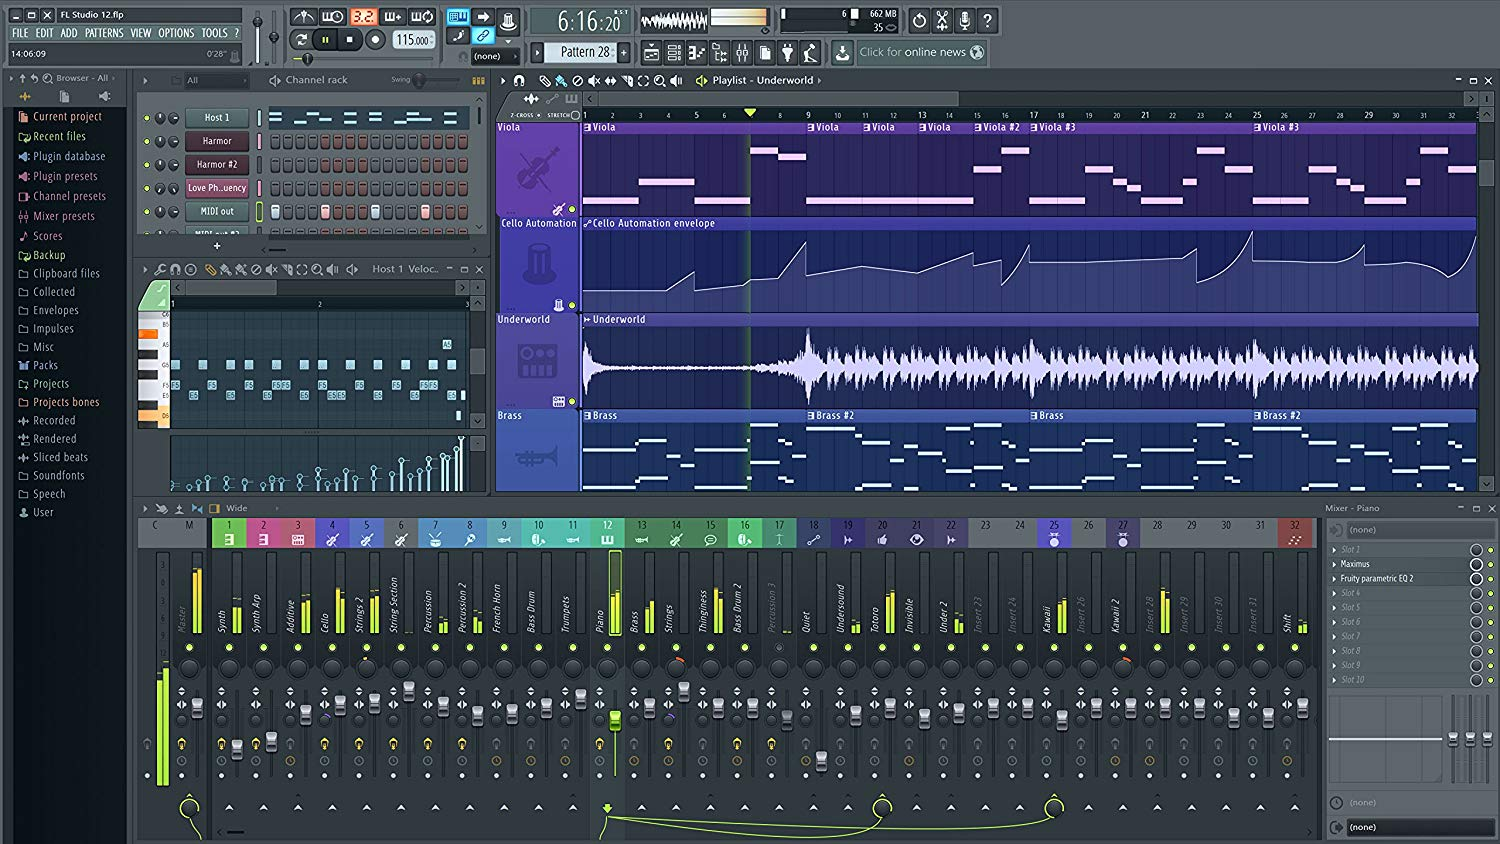 FL Studio windows